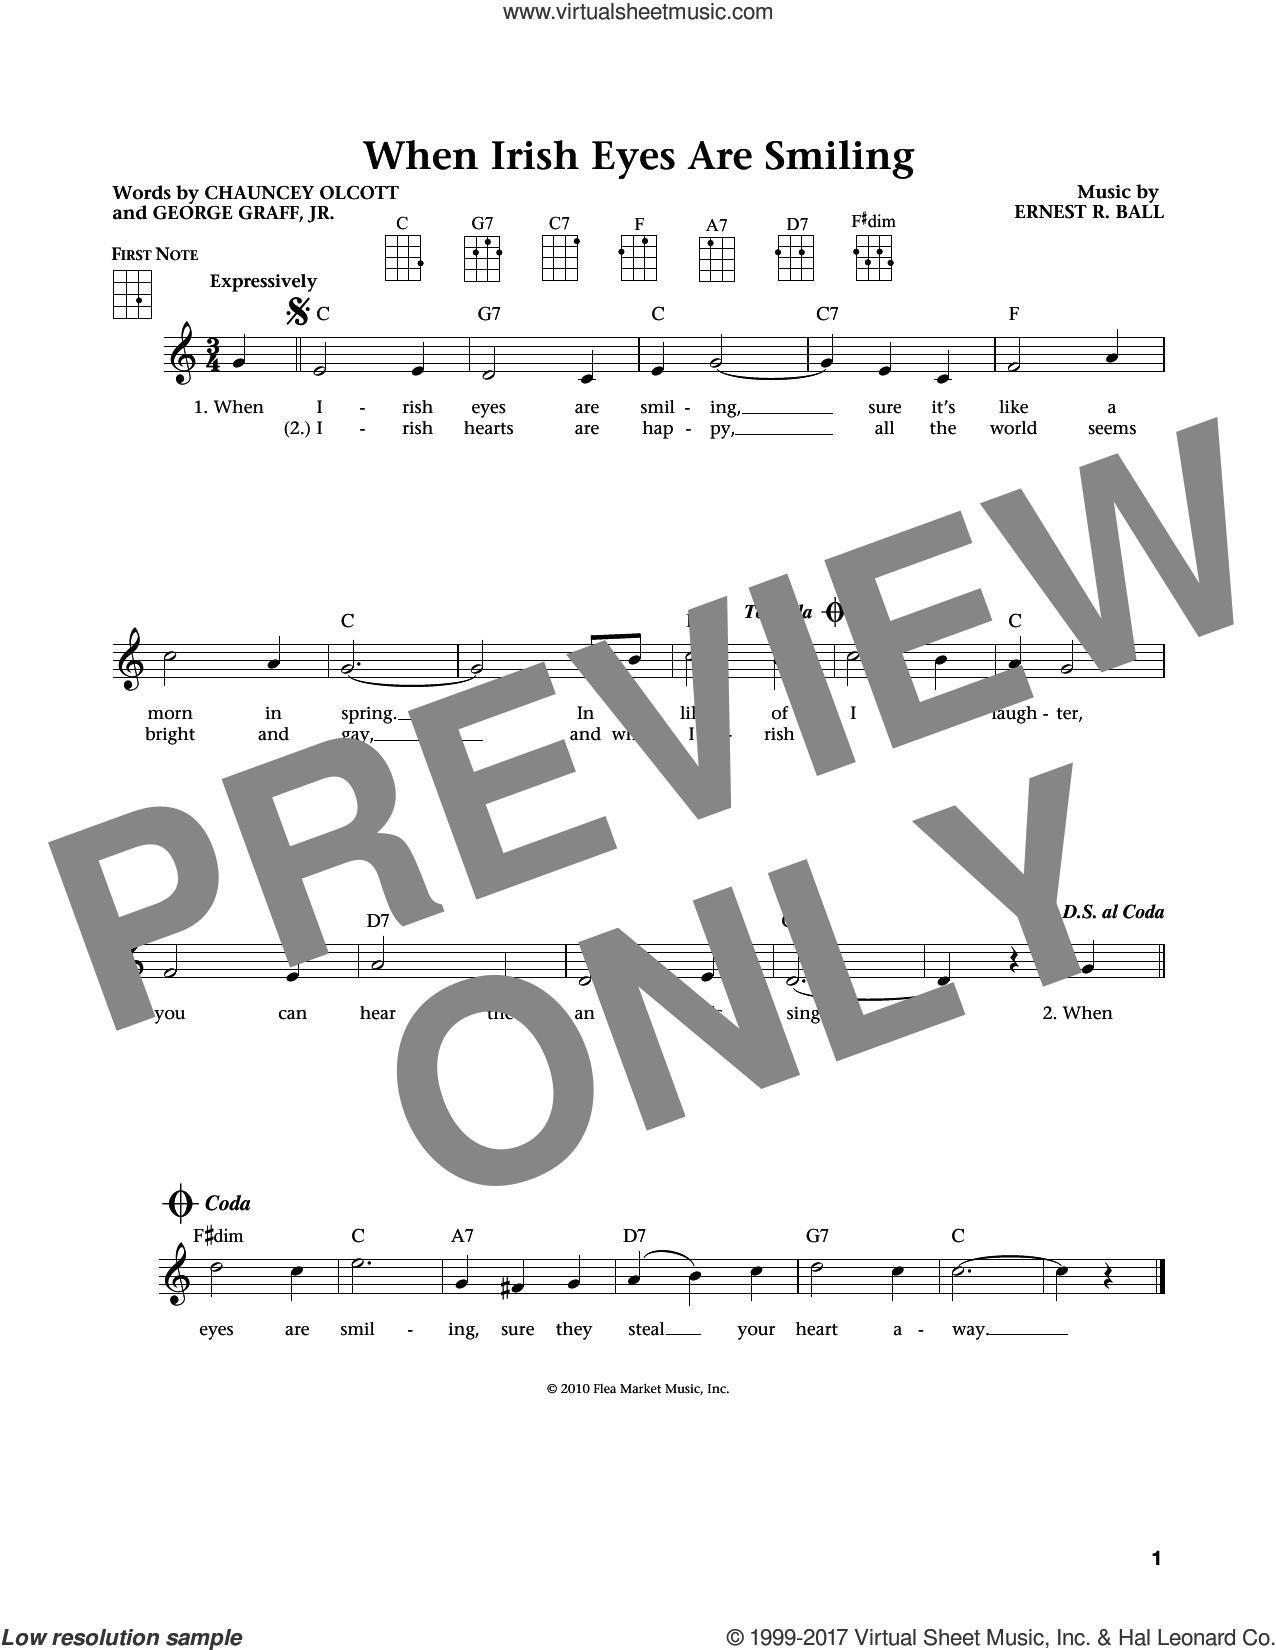 When Irish Eyes Are Smiling sheet music for ukulele by Chauncey Olcott, Jim Beloff, Liz Beloff, Ernest R. Ball and George Graff Jr., intermediate. Score Image Preview.